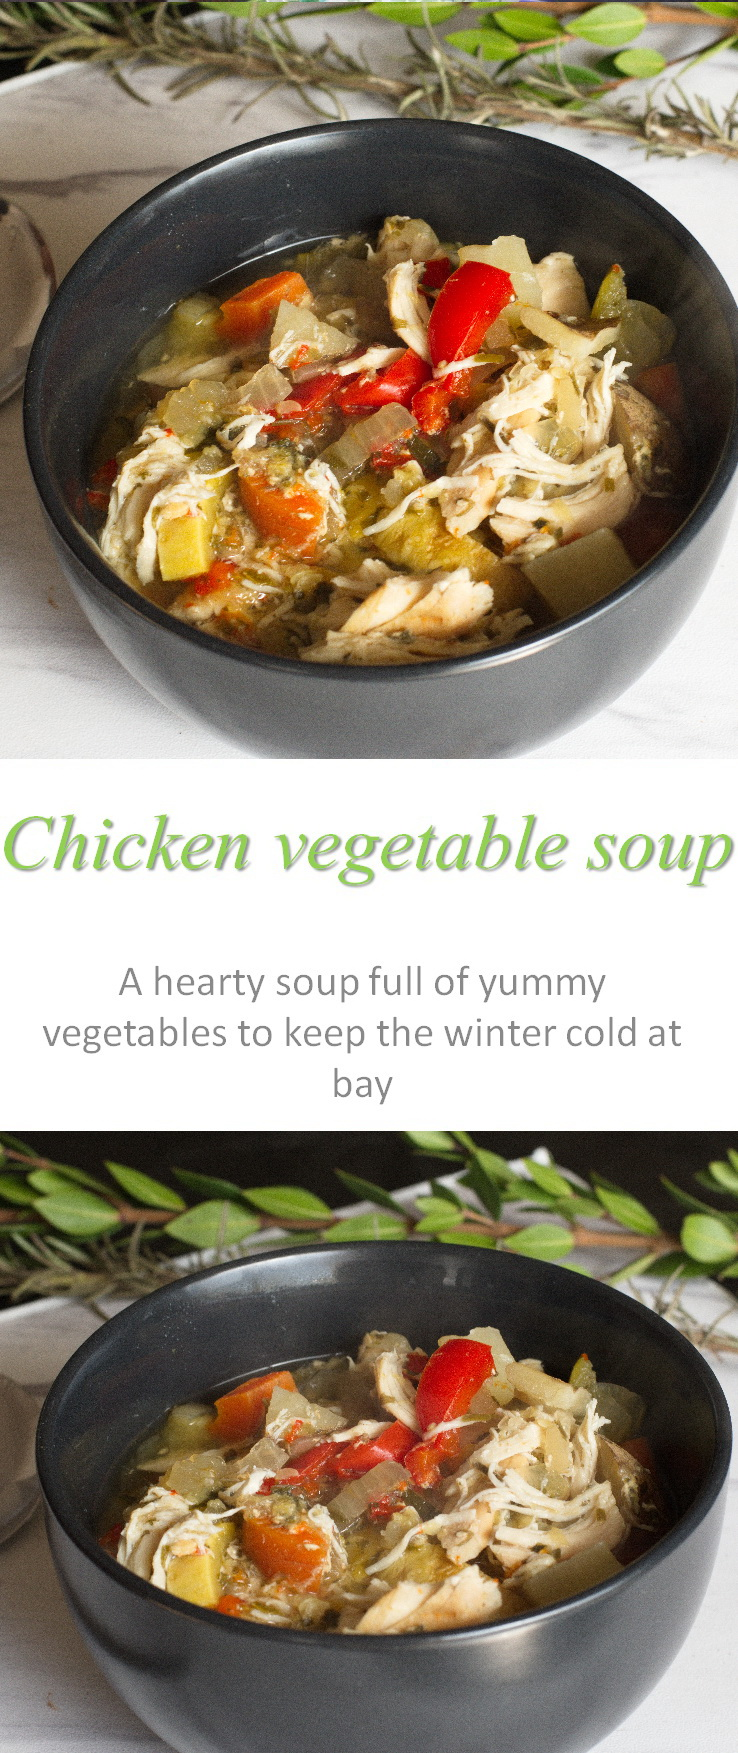 A hearty meal, this chicken vegetable soup is chock full of healthy vegetables and chicken, with just enough herbs to give it an awesome taste. #chicken